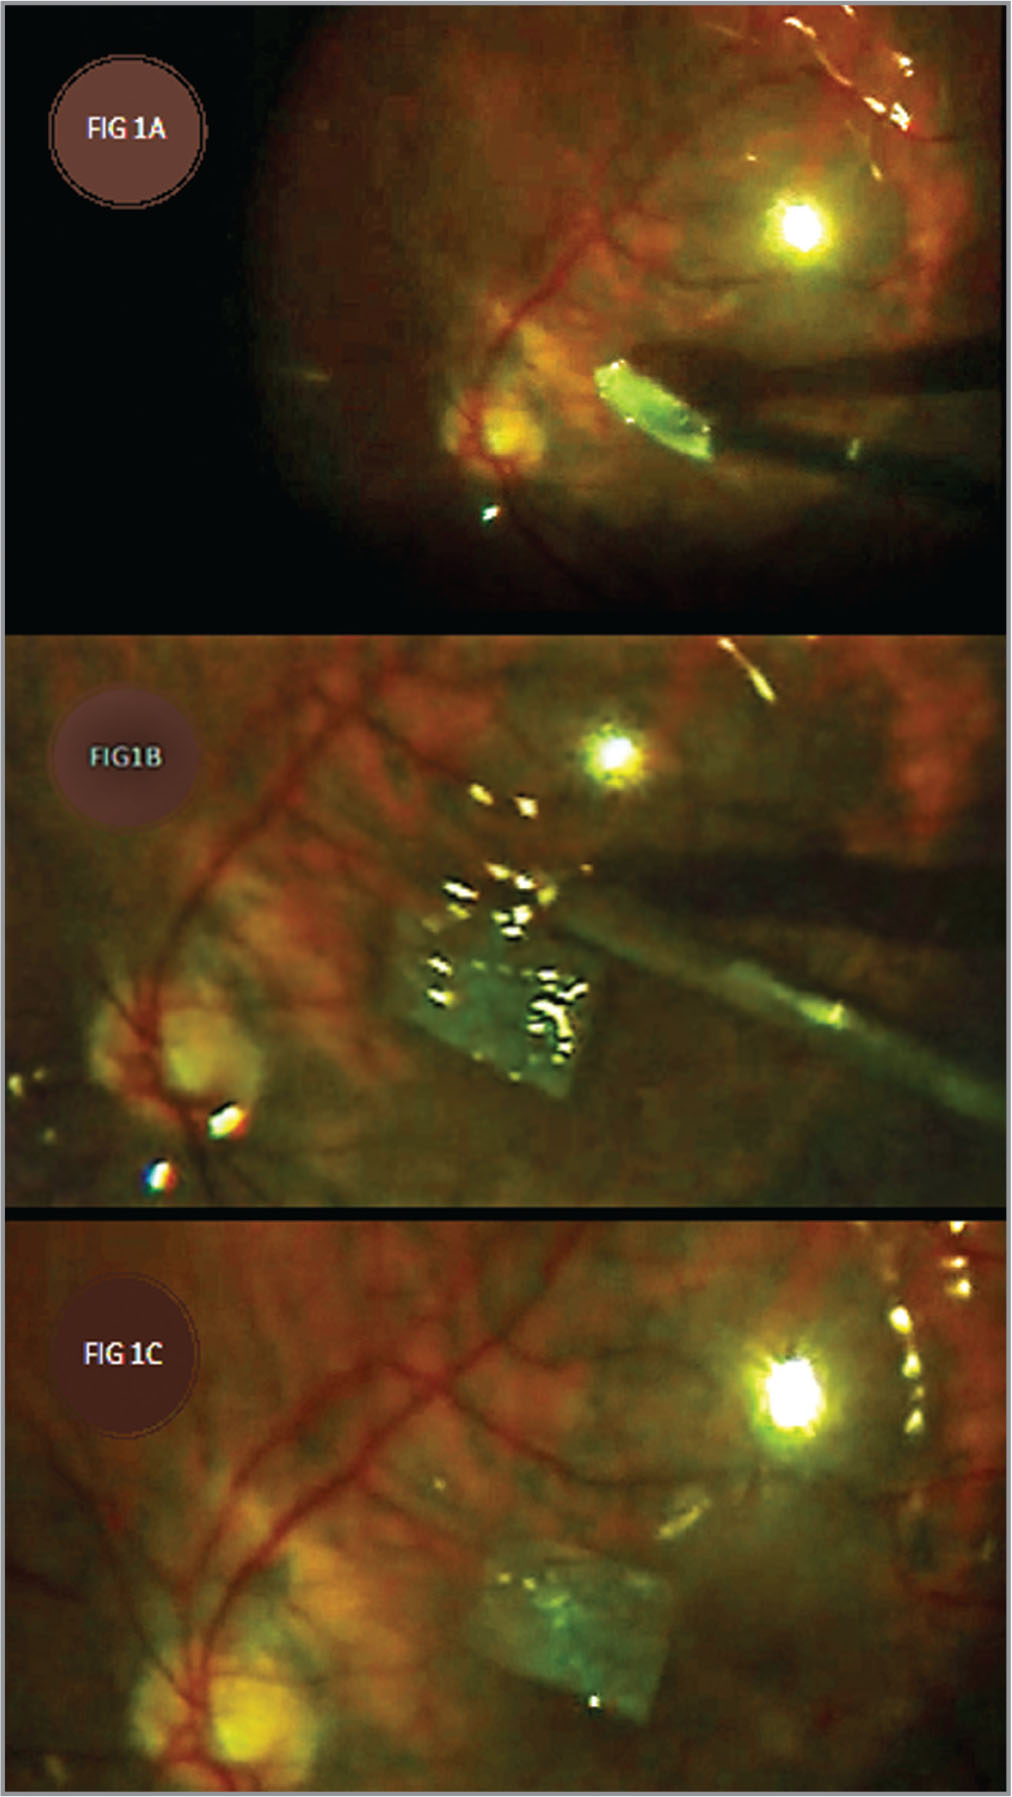 (A) Image showing handling and introduction of amniotic membrane graft (AMG) inside the vitreous cavity. (B) Showing backflush needle completing fluid-air exchange nearby the AMG. (C) Showing the final positioning of the membrane over the macular hole.